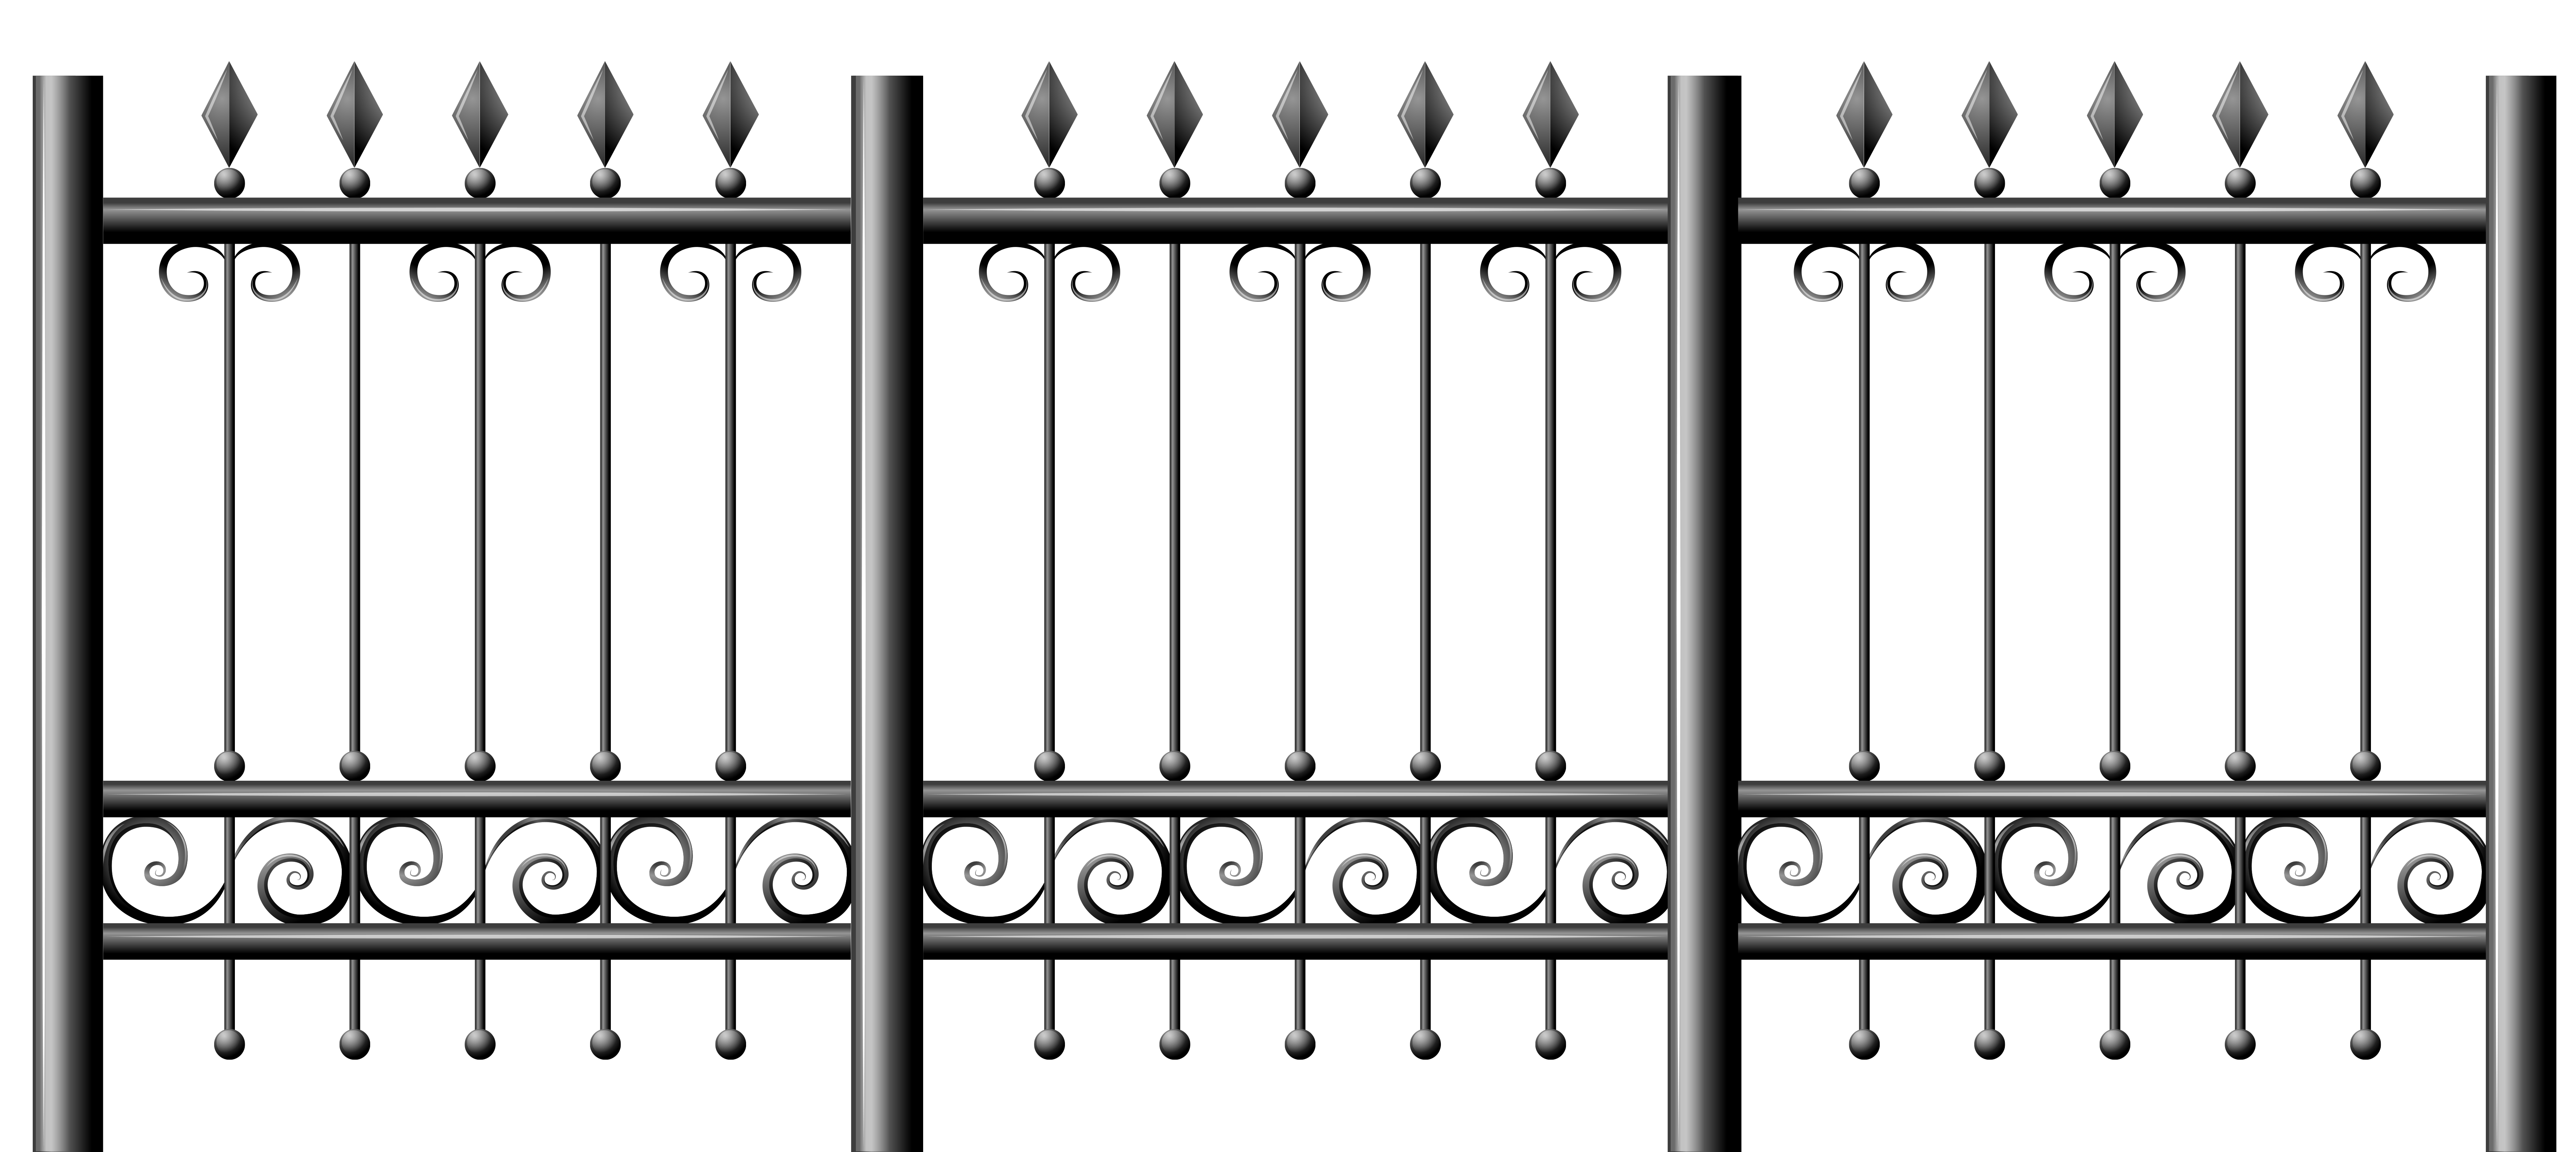 Transparent Iron Fence Png Clipart Diy Projects Small Iron Fence Small House Decorating